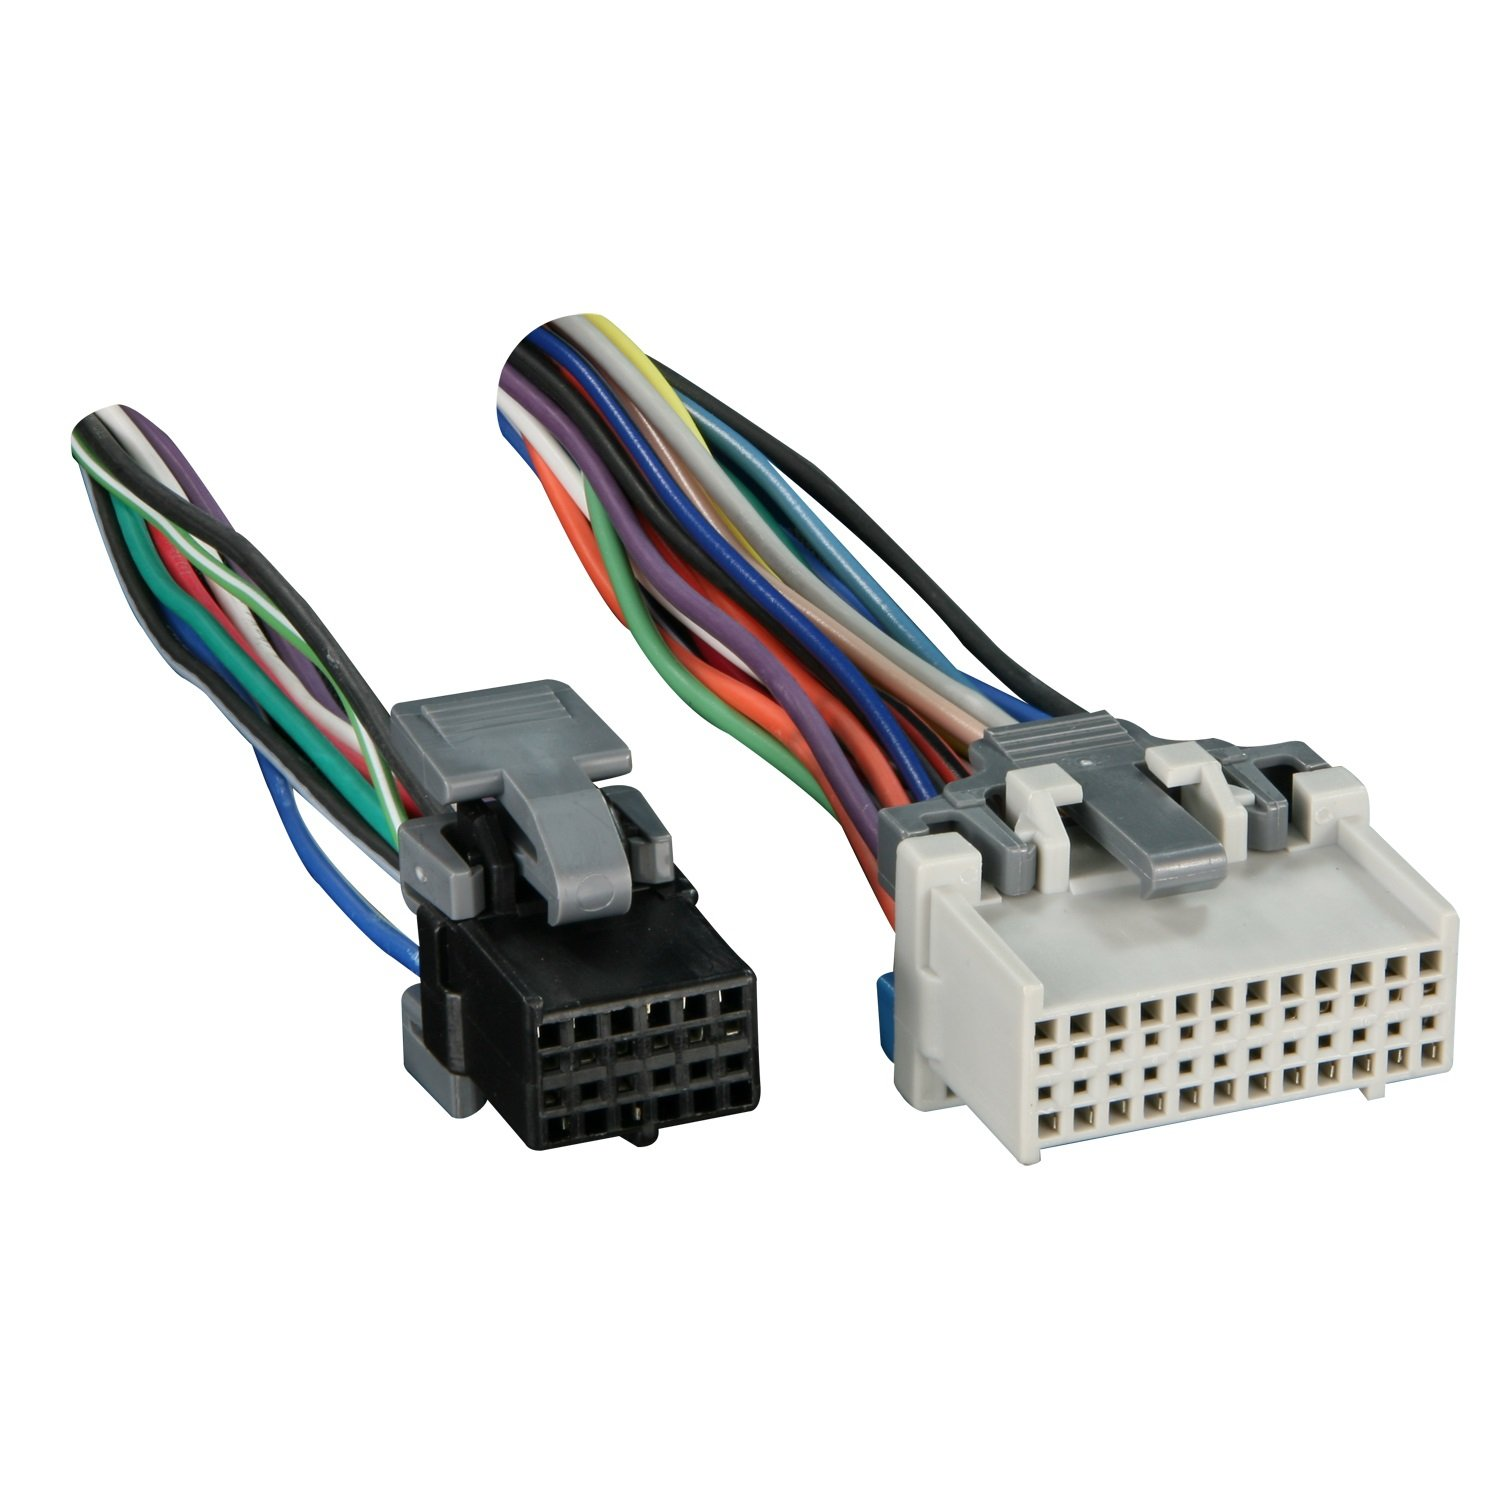 amazon com metra turbowires 71 2003 1 wiring harness car electronics rh amazon com oem wiring harness connectors oem wiring harness company